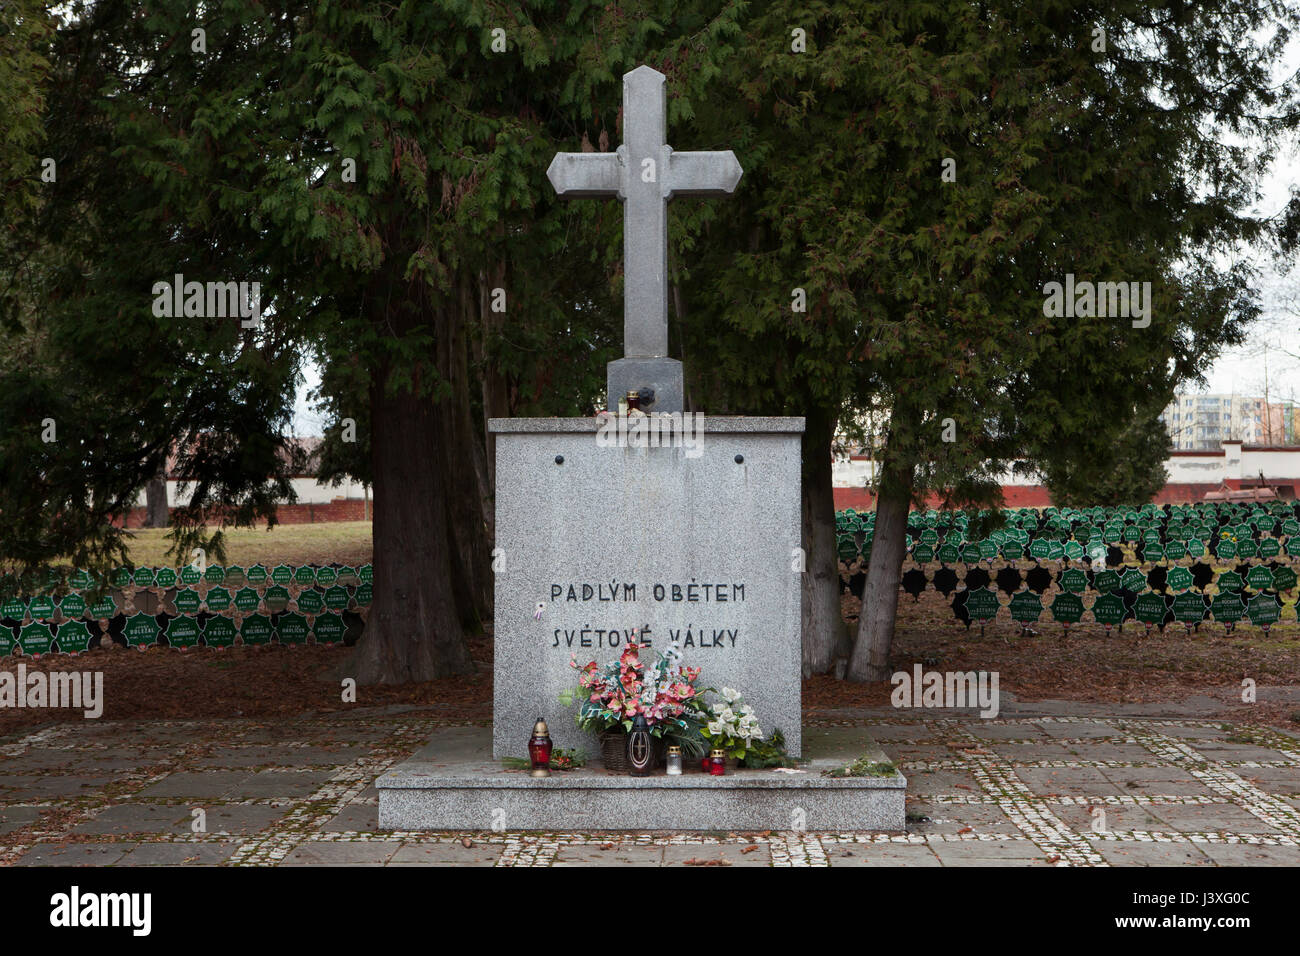 Monument to Czech soldiers fallen during the First World War in service of the Austro-Hungarian Army on the ground - Stock Image